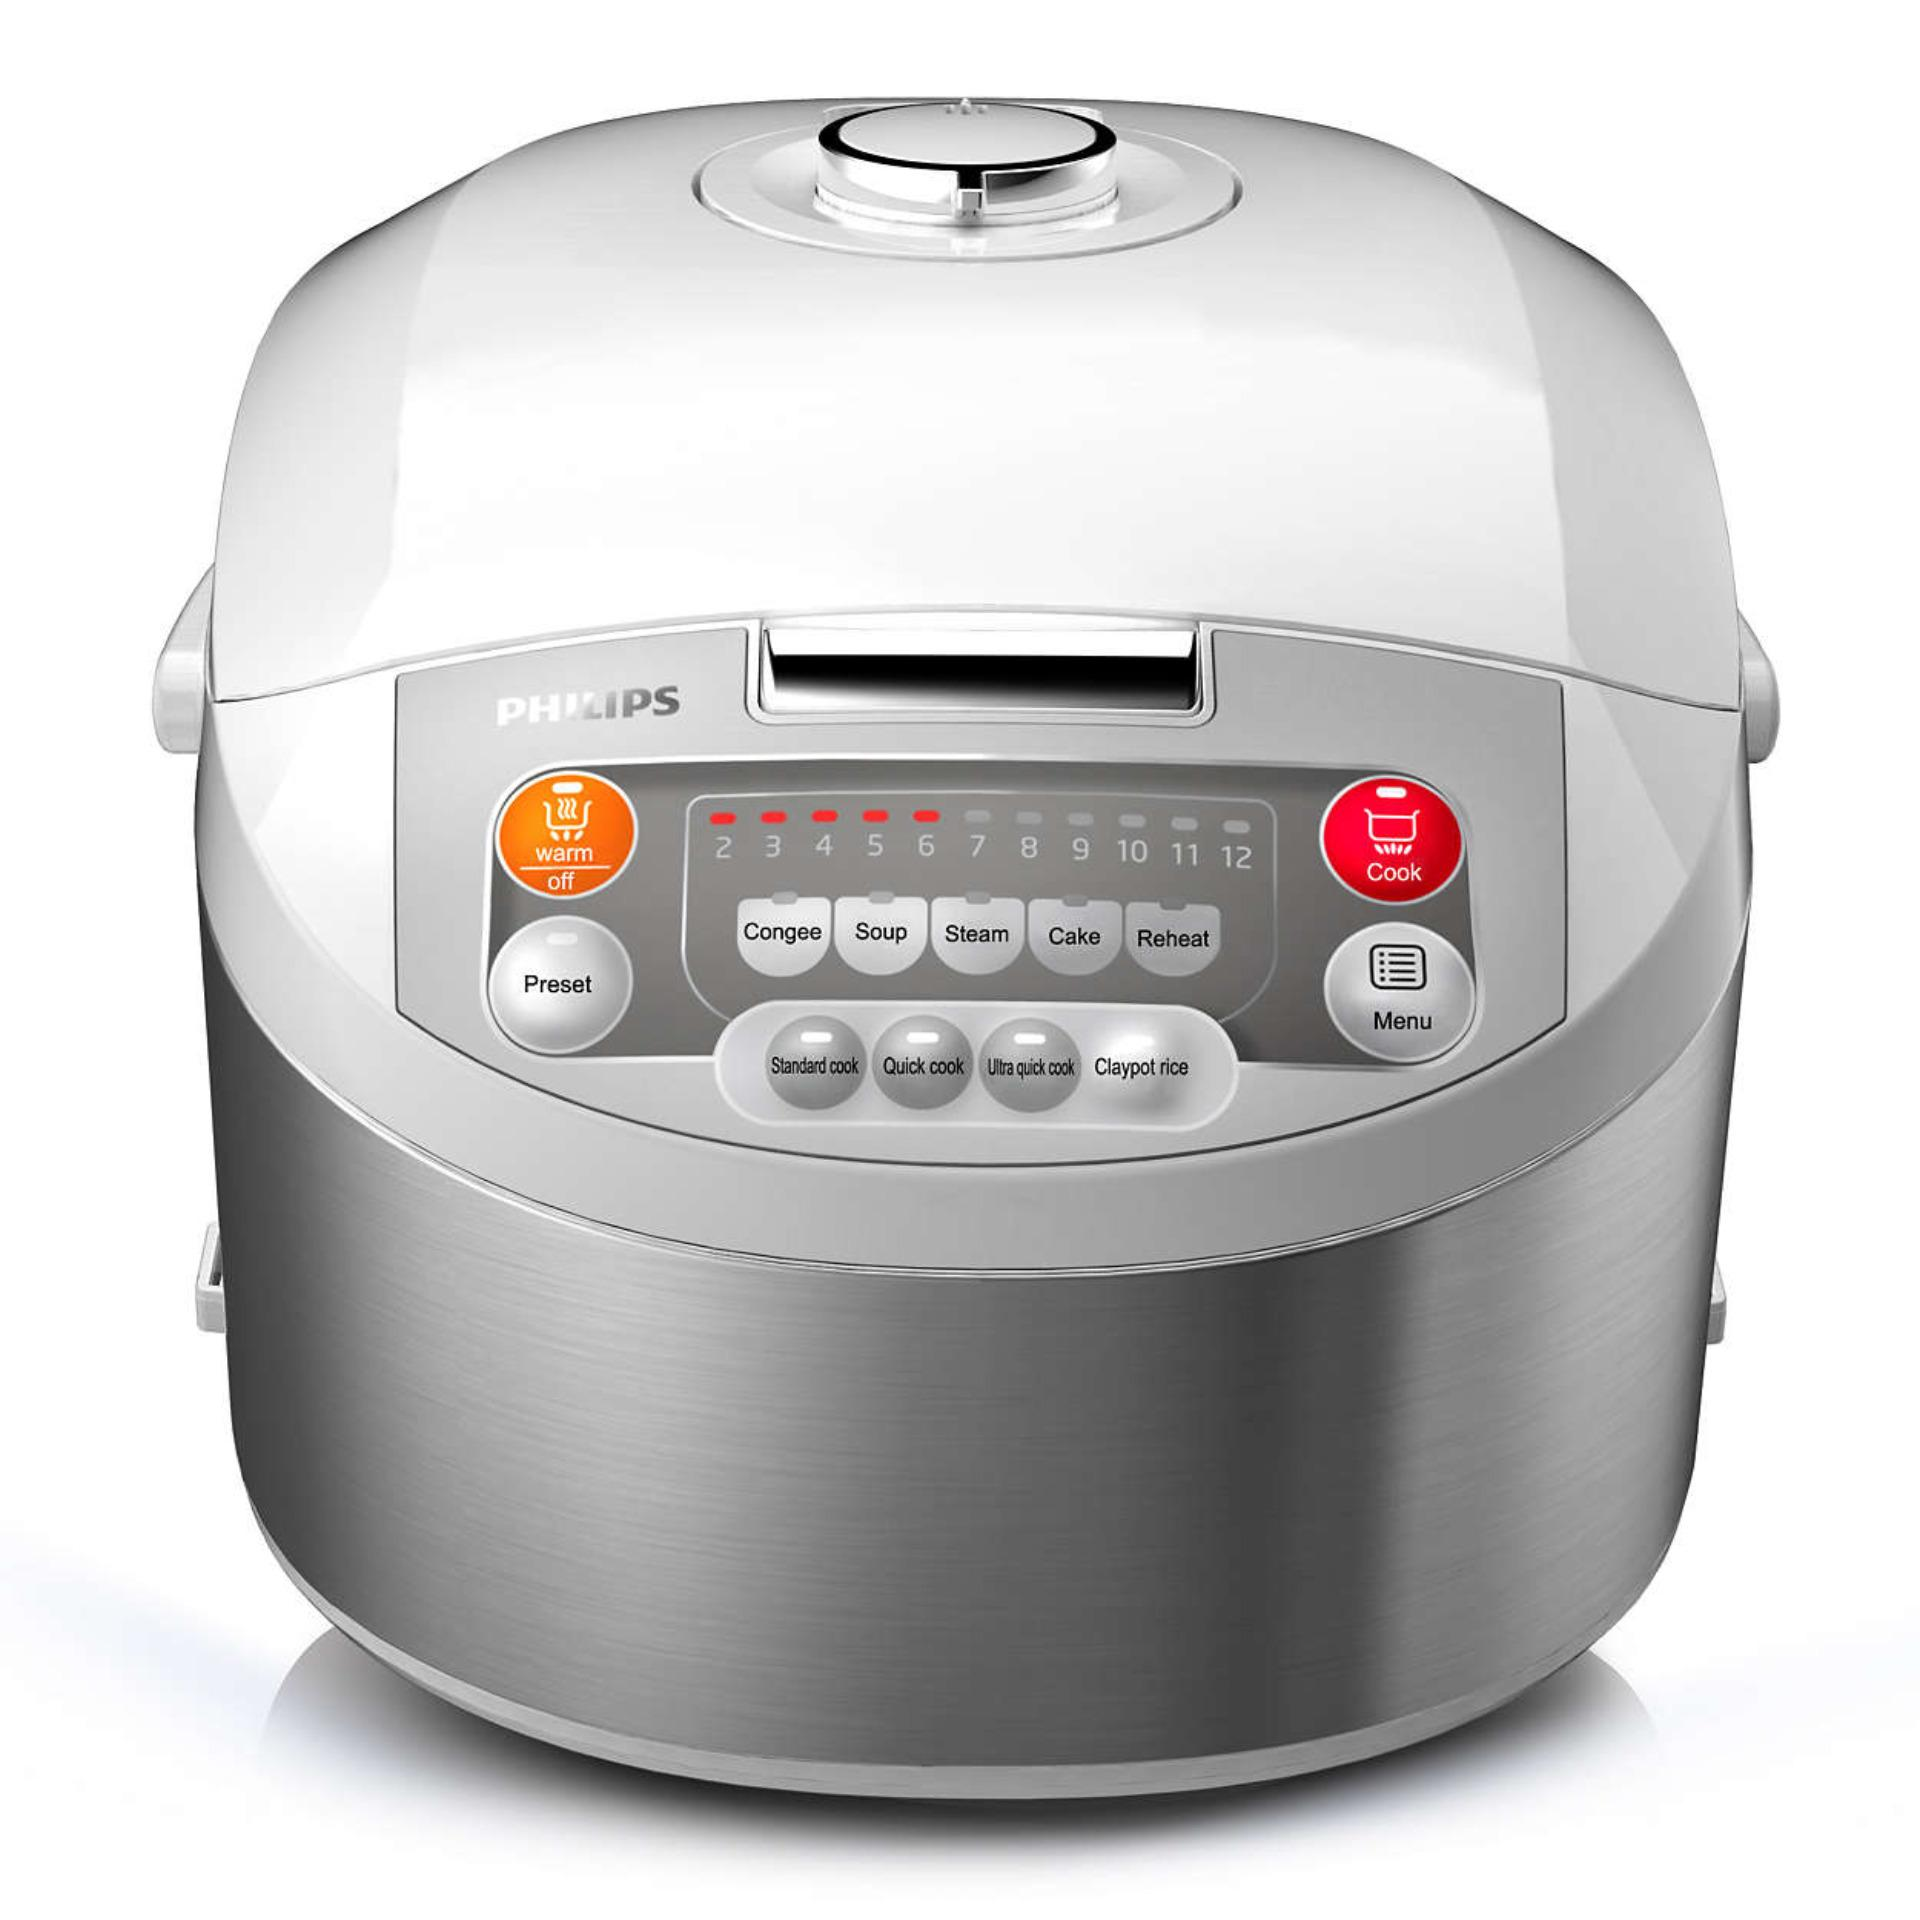 Philips Fuzzy Logic Rice Cooker / Penanak Nasi Pintar HD3038